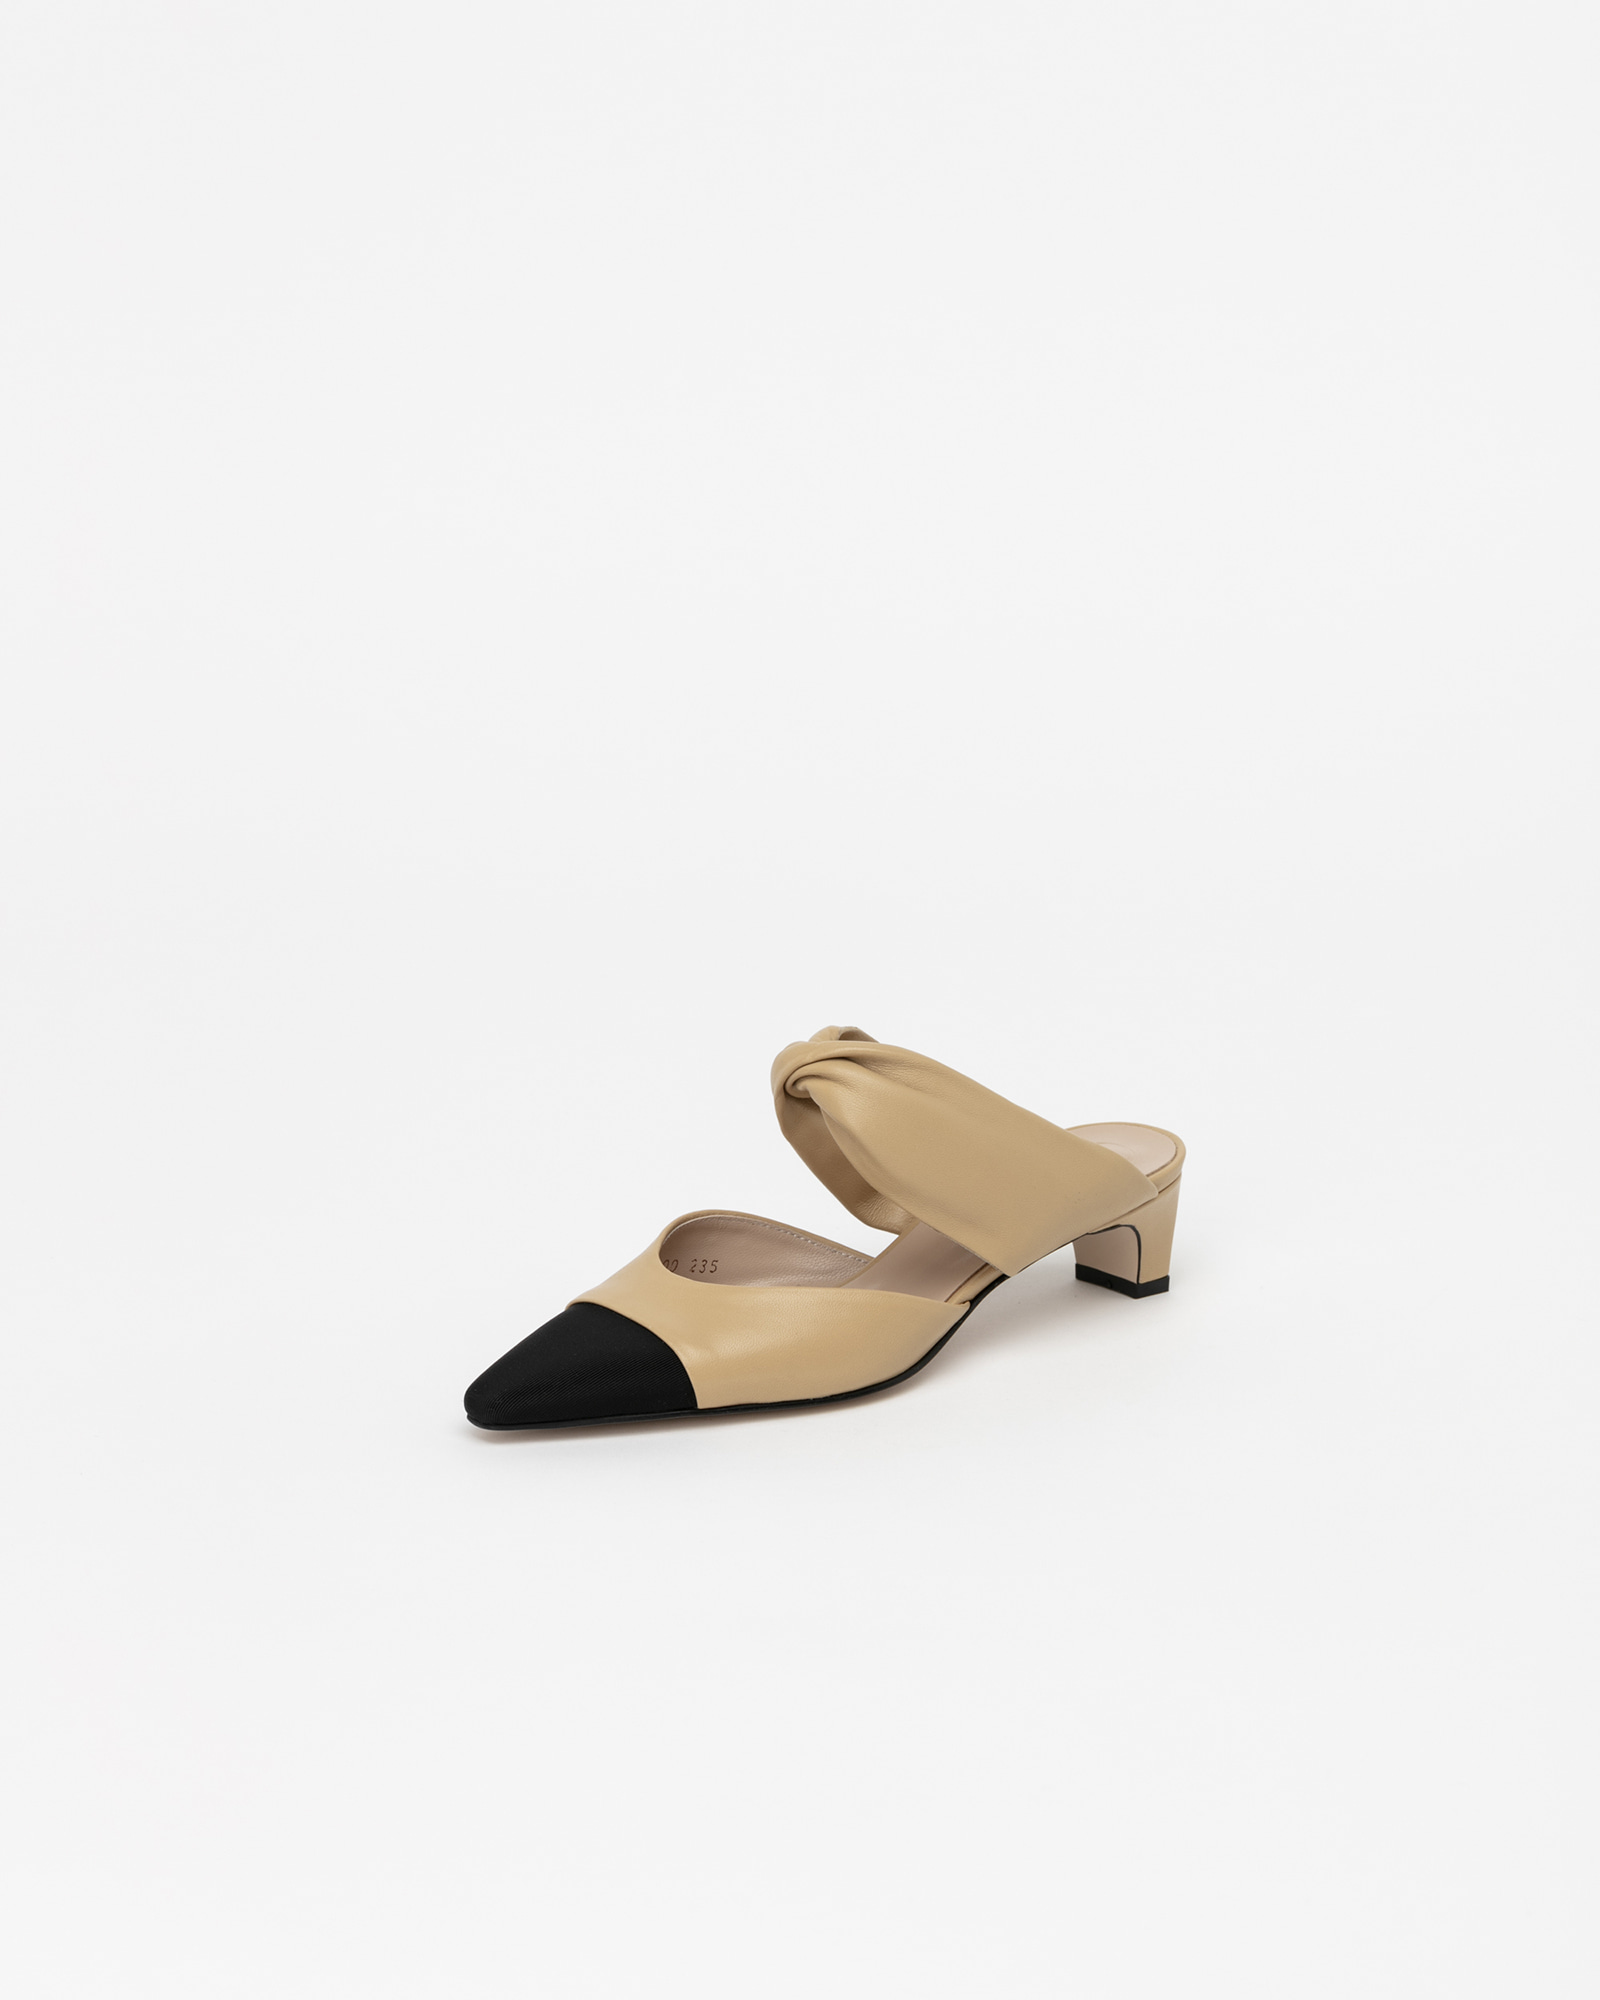 Zena Soft Mules in Beige with Black Toe